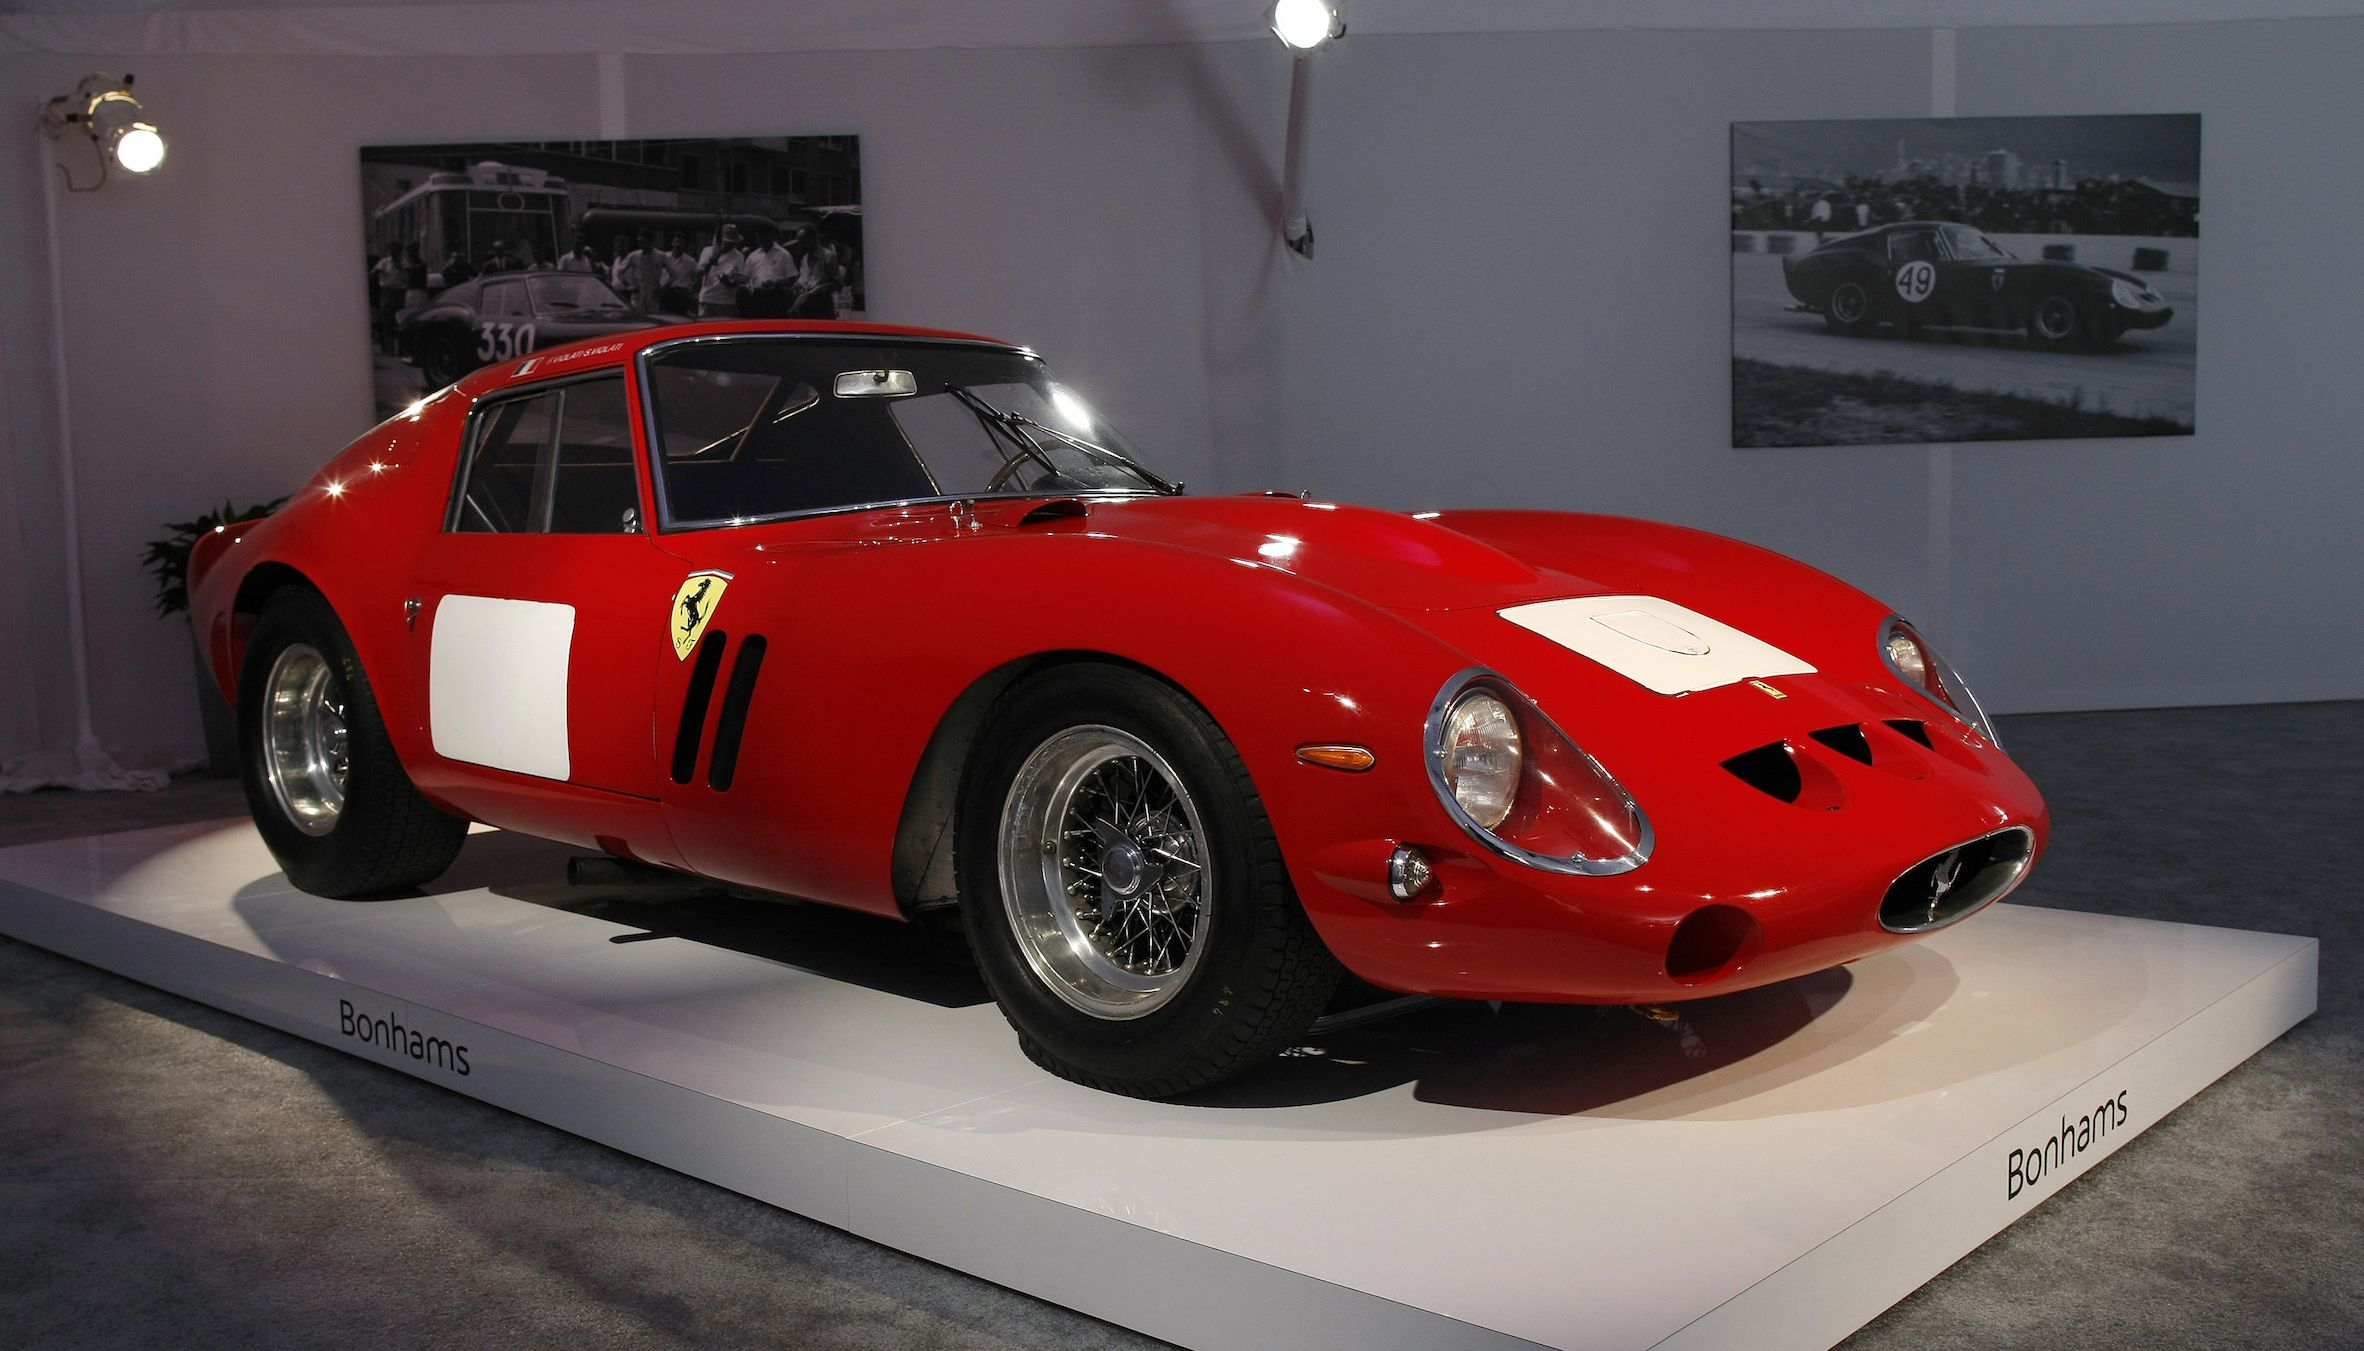 A 1962-63 Ferrari 250 GTO Berlinetta is displayed during a preview for the Bonhams Quail Lodge car auction in Carmel, California, August 14, 2014. The Ferrari GTO was auctioned at $38,115,000 becoming the most valuable car to be sold at auction according to Bonhams. The auction of collector cars is held during the Pebble Beach Automotive Week which culminates with the Concours d'Elegance. REUTERS/Michael Fiala (UNITED STATES - Tags: SOCIETY TRANSPORT BUSINESS) - RTR42HK6